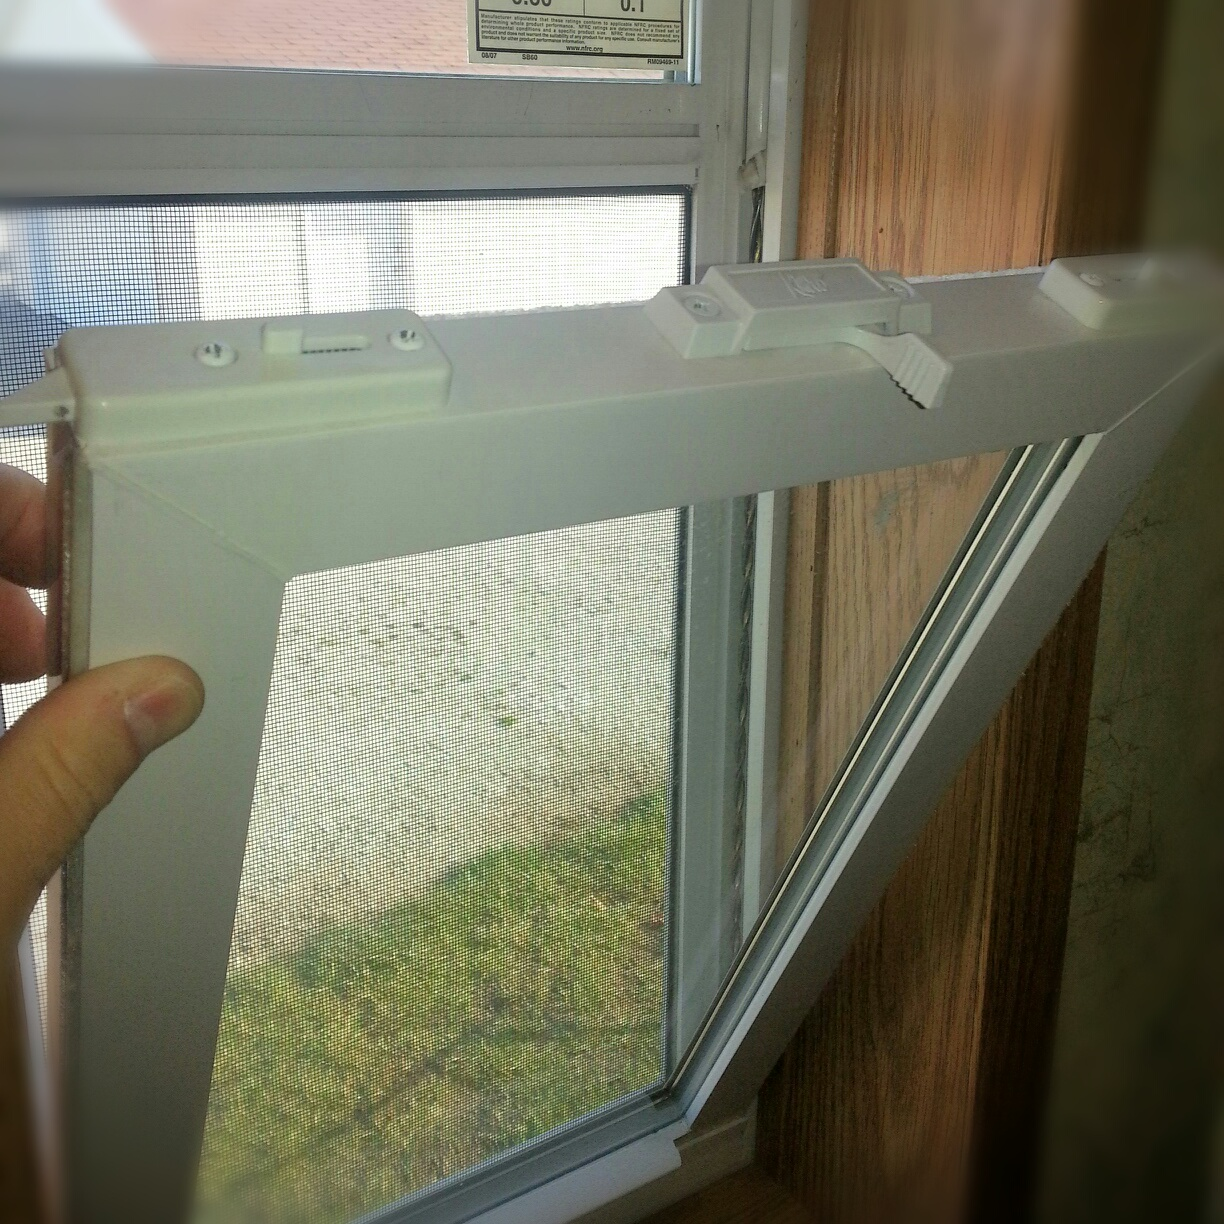 Residential Thermal-Pane Windows Standard. (Double-Pane Insulated)